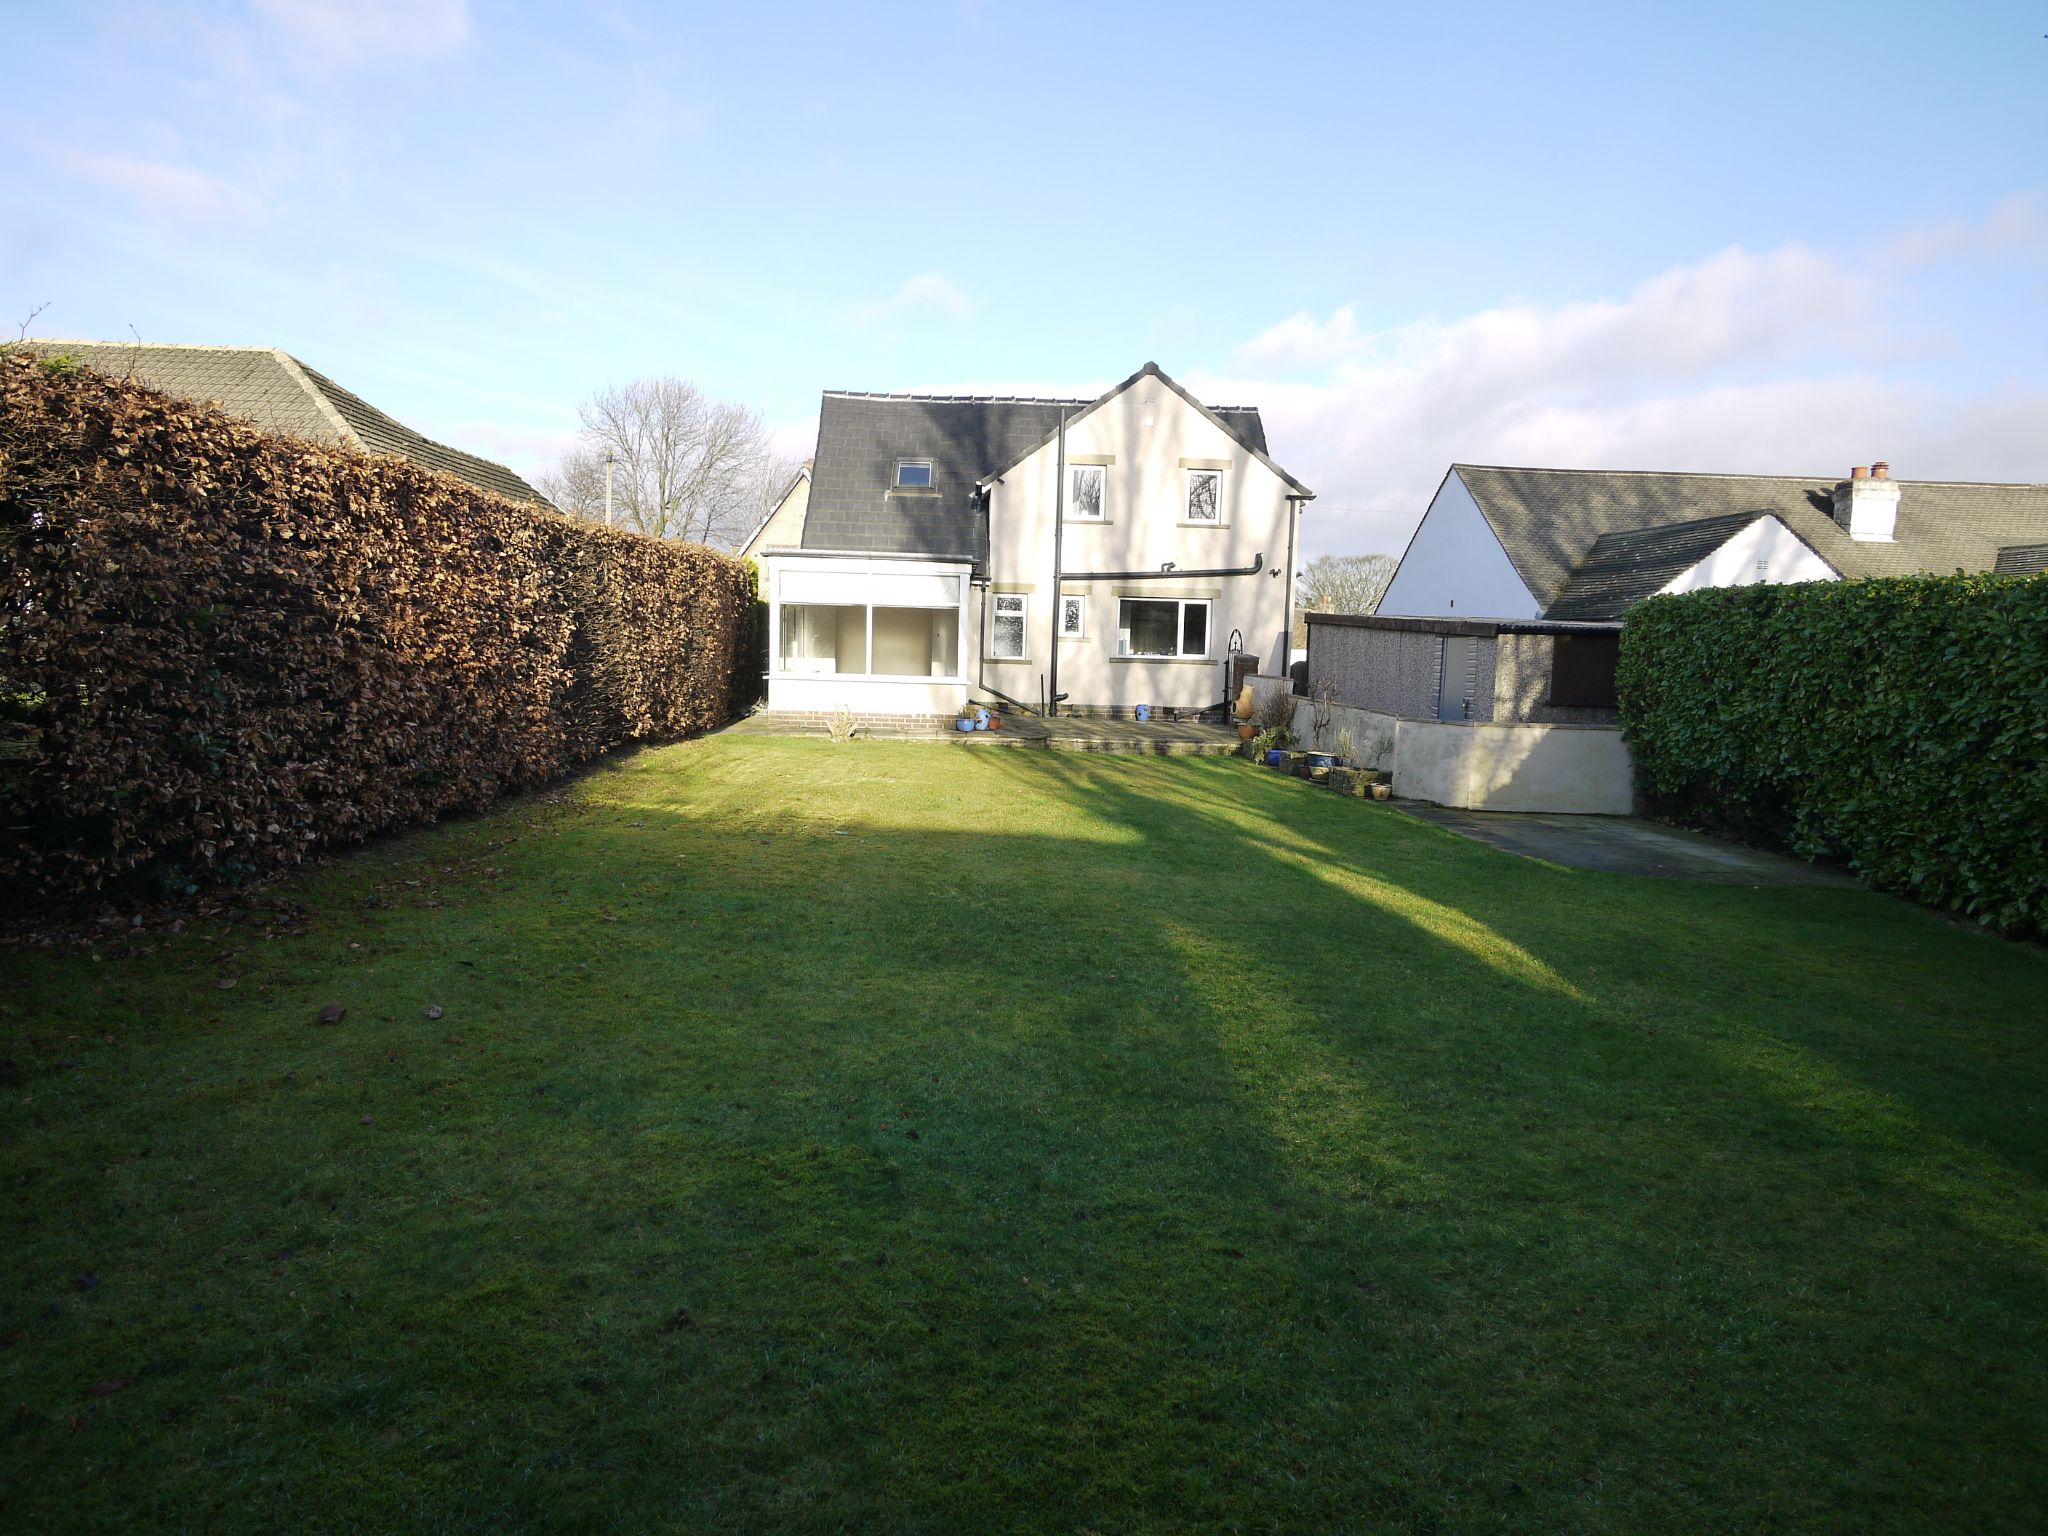 5 bedroom detached bungalow For Sale in Brighouse - rear garden.